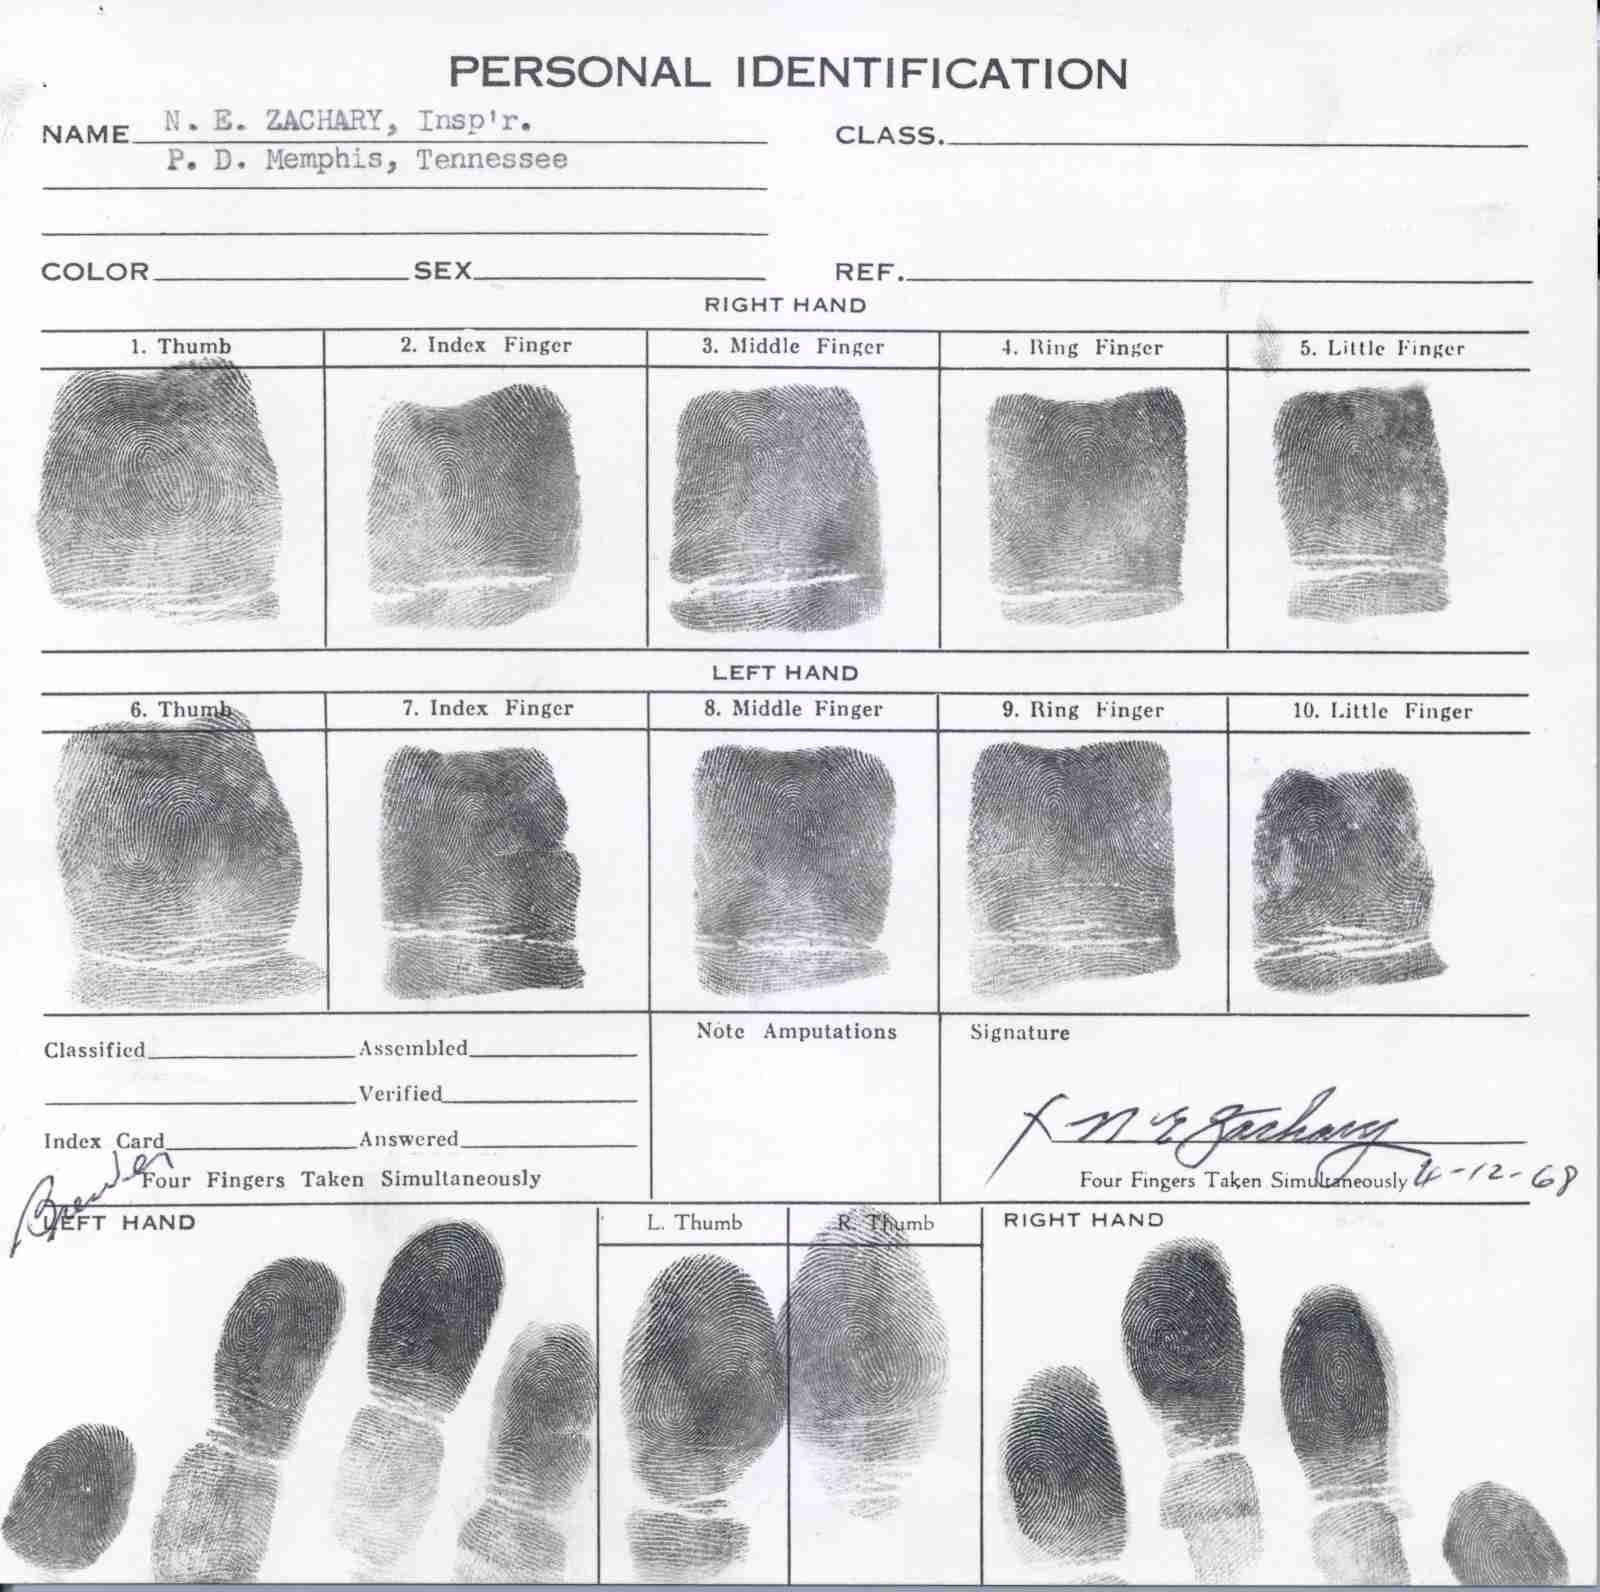 n. e. zachary fingerprint card.jpg